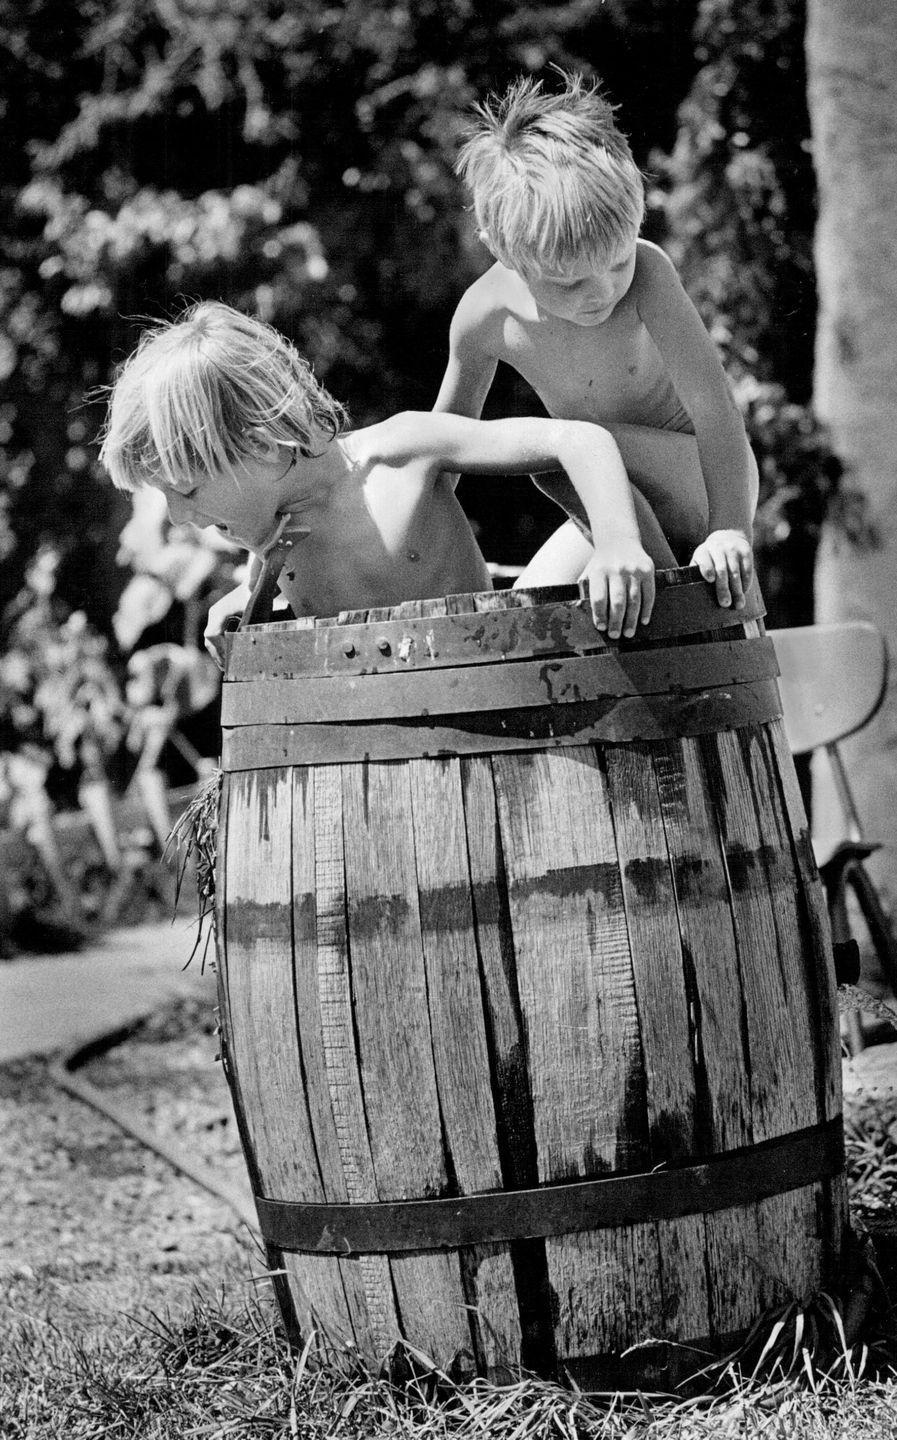 """<p>Long before it was environmentally smart, my grandparents collected rain as it ran off the garage roof into a barrel. <a href=""""http://cceonondaga.org/resources/how-to-build-a-rain-barrel"""" rel=""""nofollow noopener"""" target=""""_blank"""" data-ylk=""""slk:Make"""" class=""""link rapid-noclick-resp"""">Make</a> or buy your own to collect free water for your garden.</p>"""